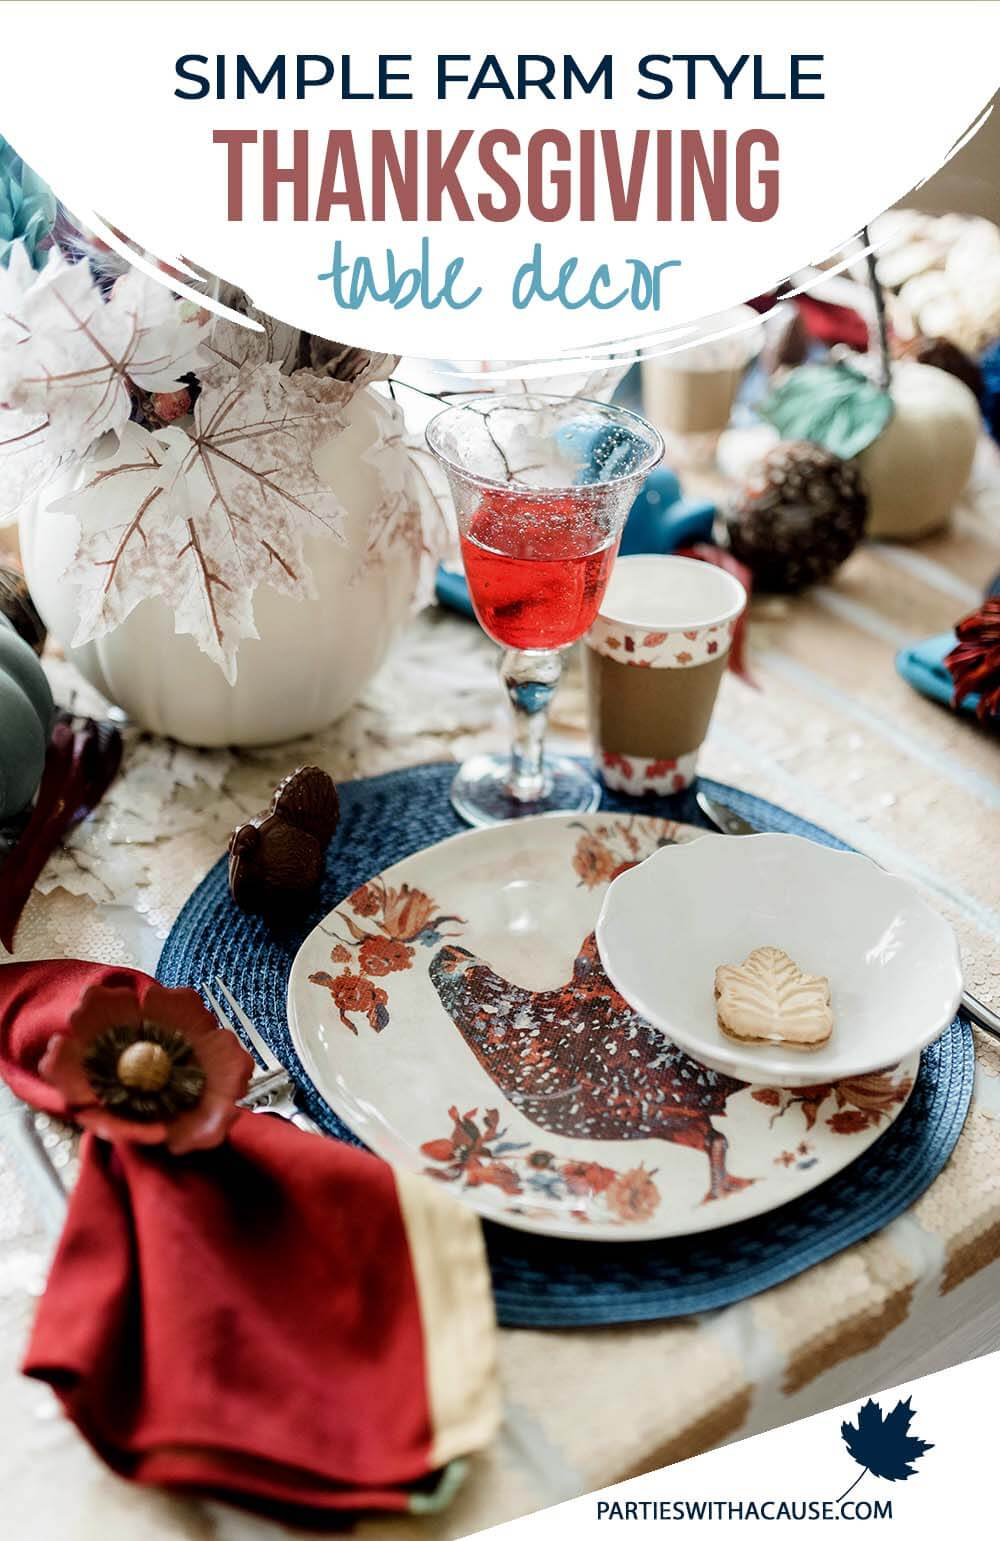 Simple farm style Thanksgiving table ideas by Salt Lake Party Stylist